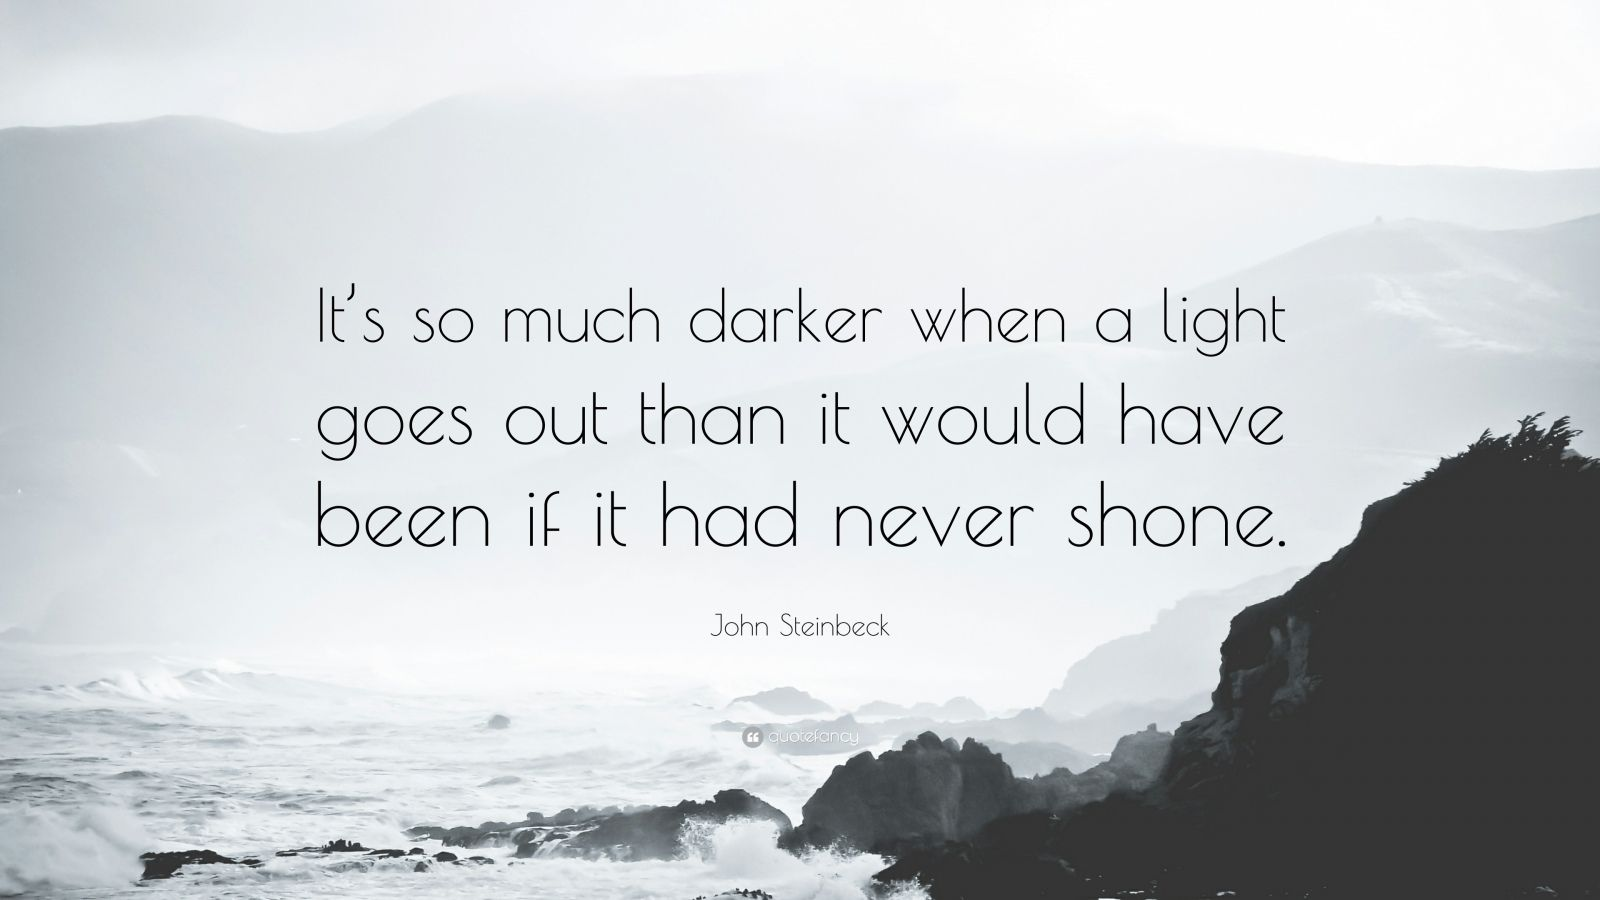 """John Steinbeck Quote: """"It's so much darker when a light goes out than it would have been if it had never shone."""""""